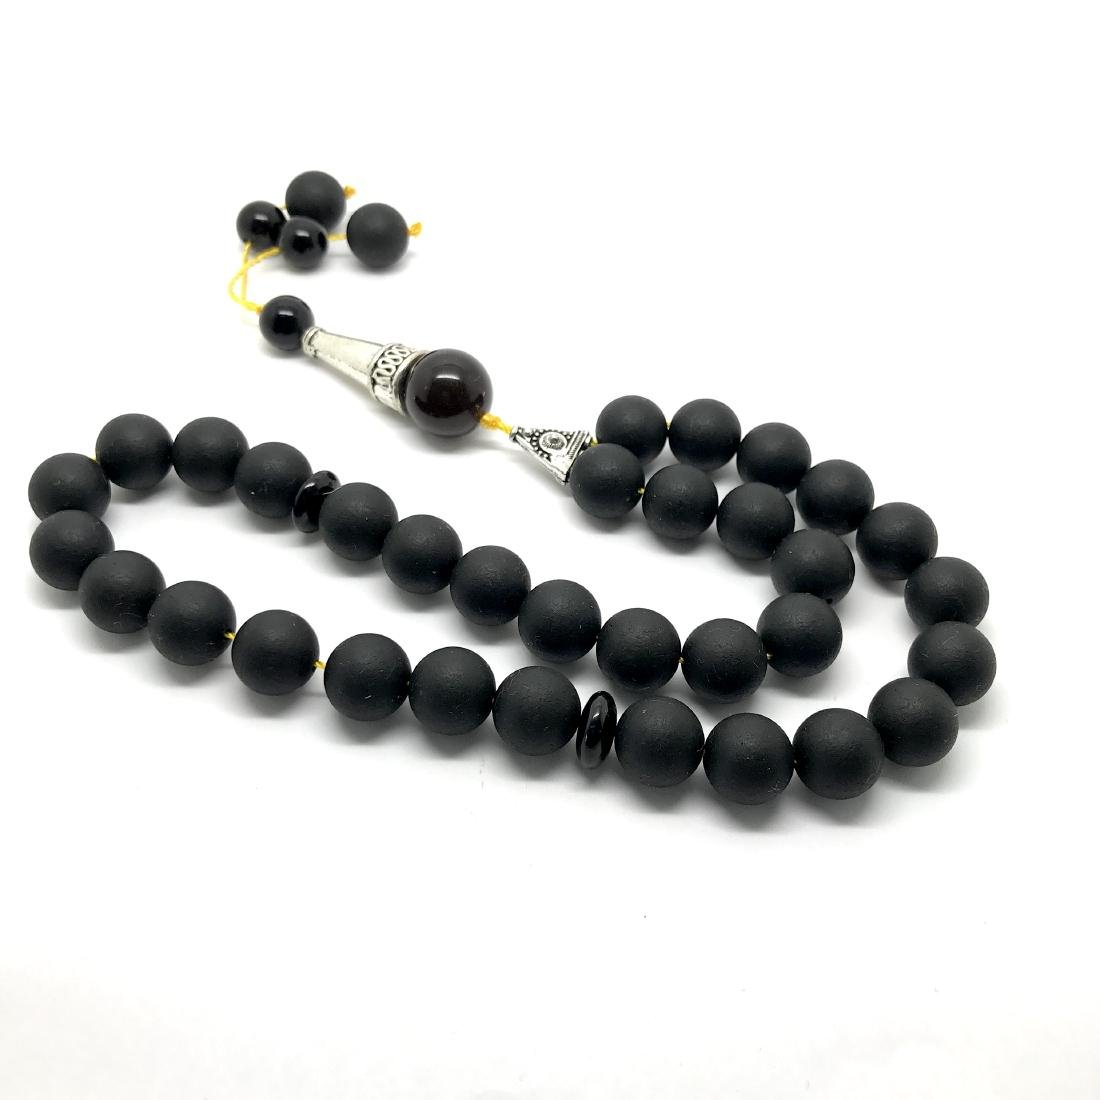 Misbaha tesbih Baltic amber black 33 beads ø10mm 27 - 9